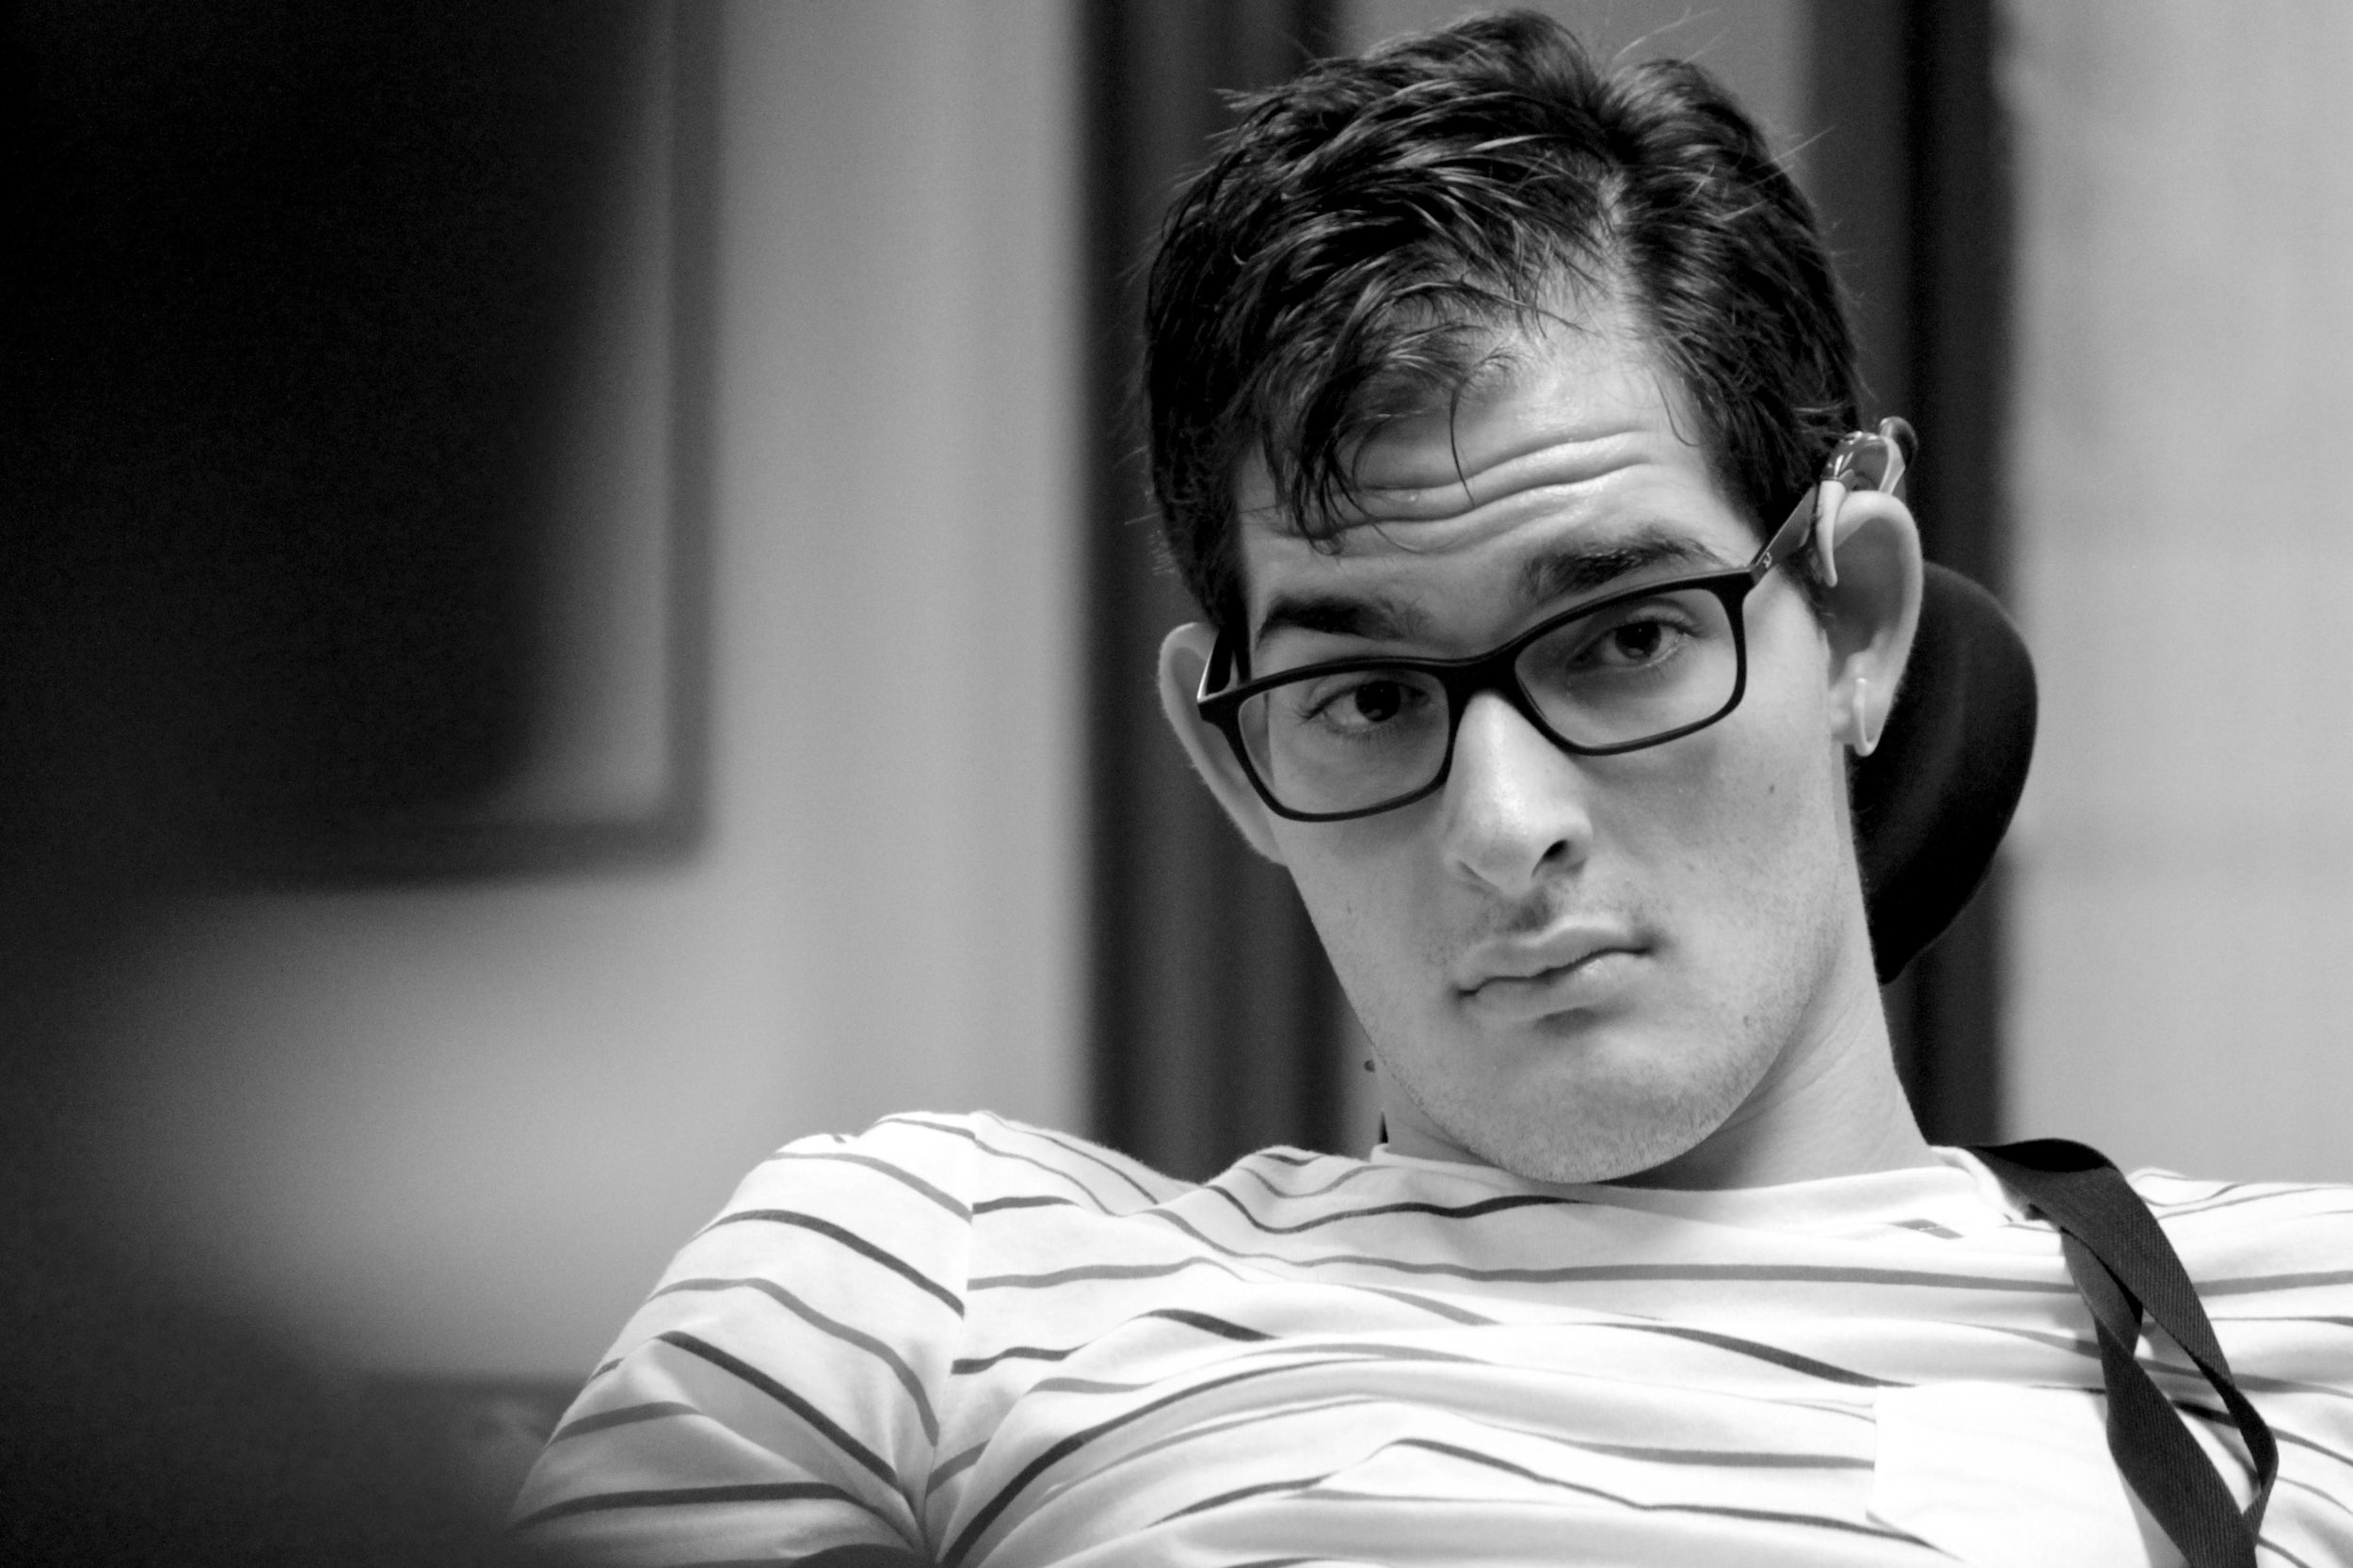 A young man is pictured from the shoulders up. He is leaning back in his chair. He wears thick-rimmed black glasses and although he is clearly listening to someone he is raising his eyebrows with a straight face.